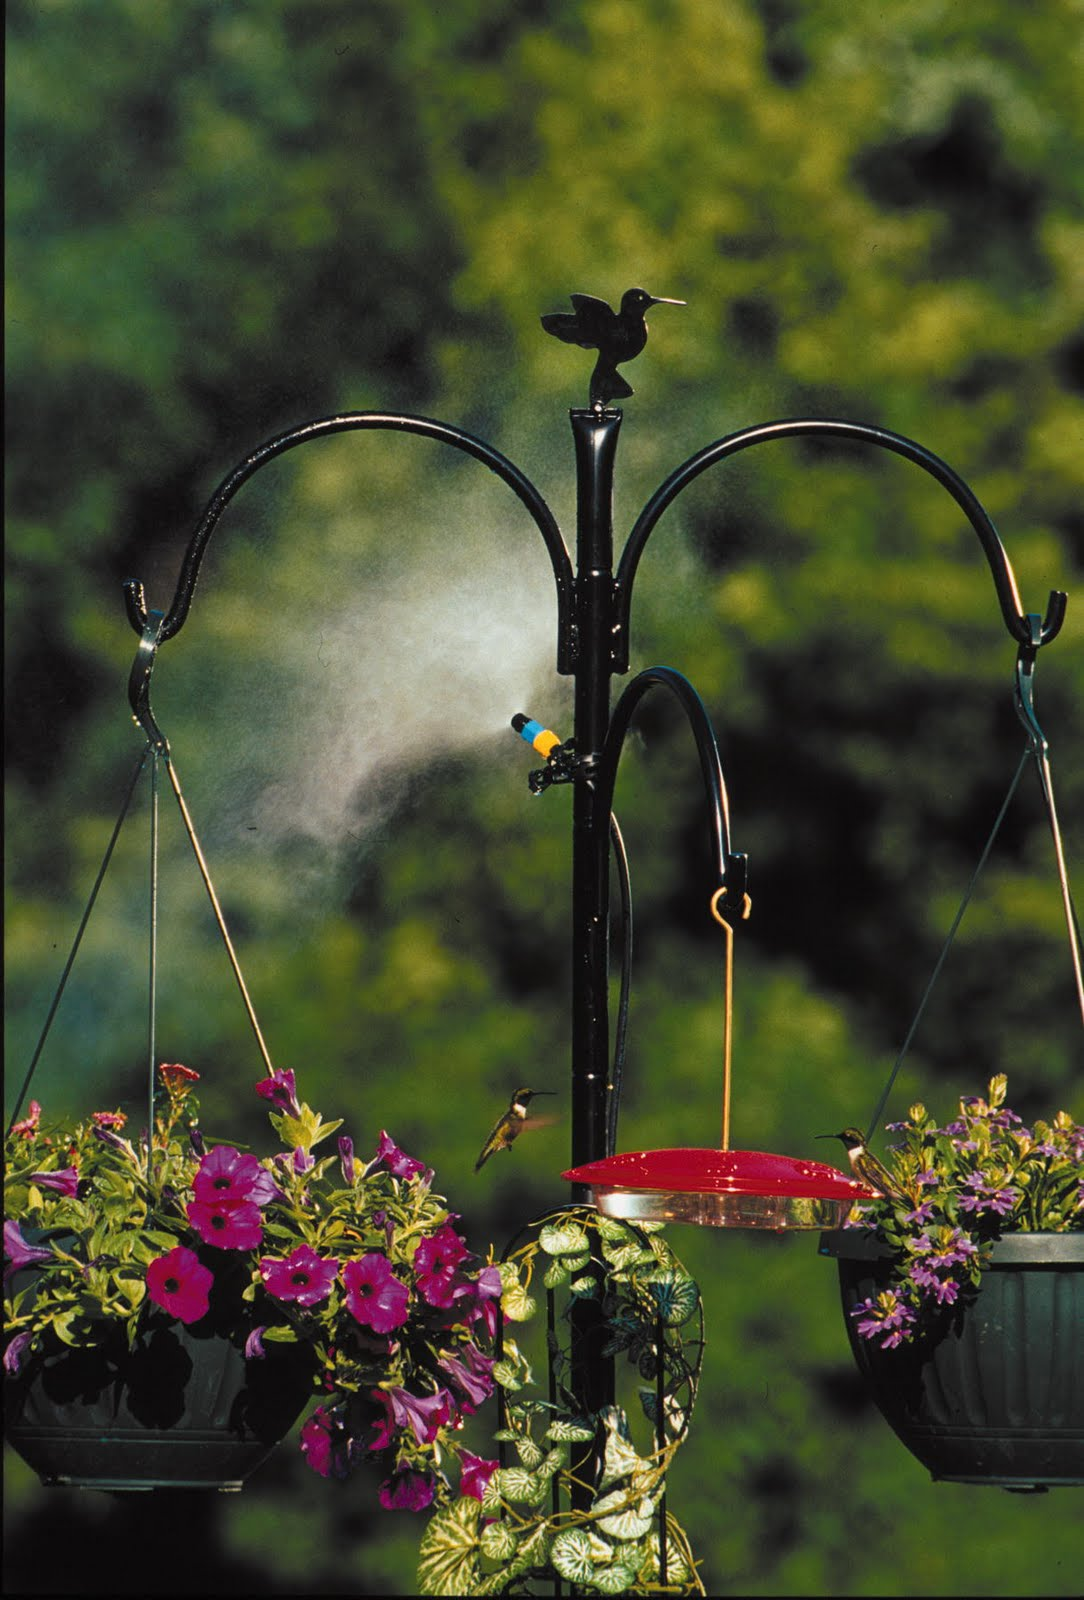 the win image sweepstakes guide id now prize to bird feeder unlimited a crossley wild feeders closed pack ultimate birds enter